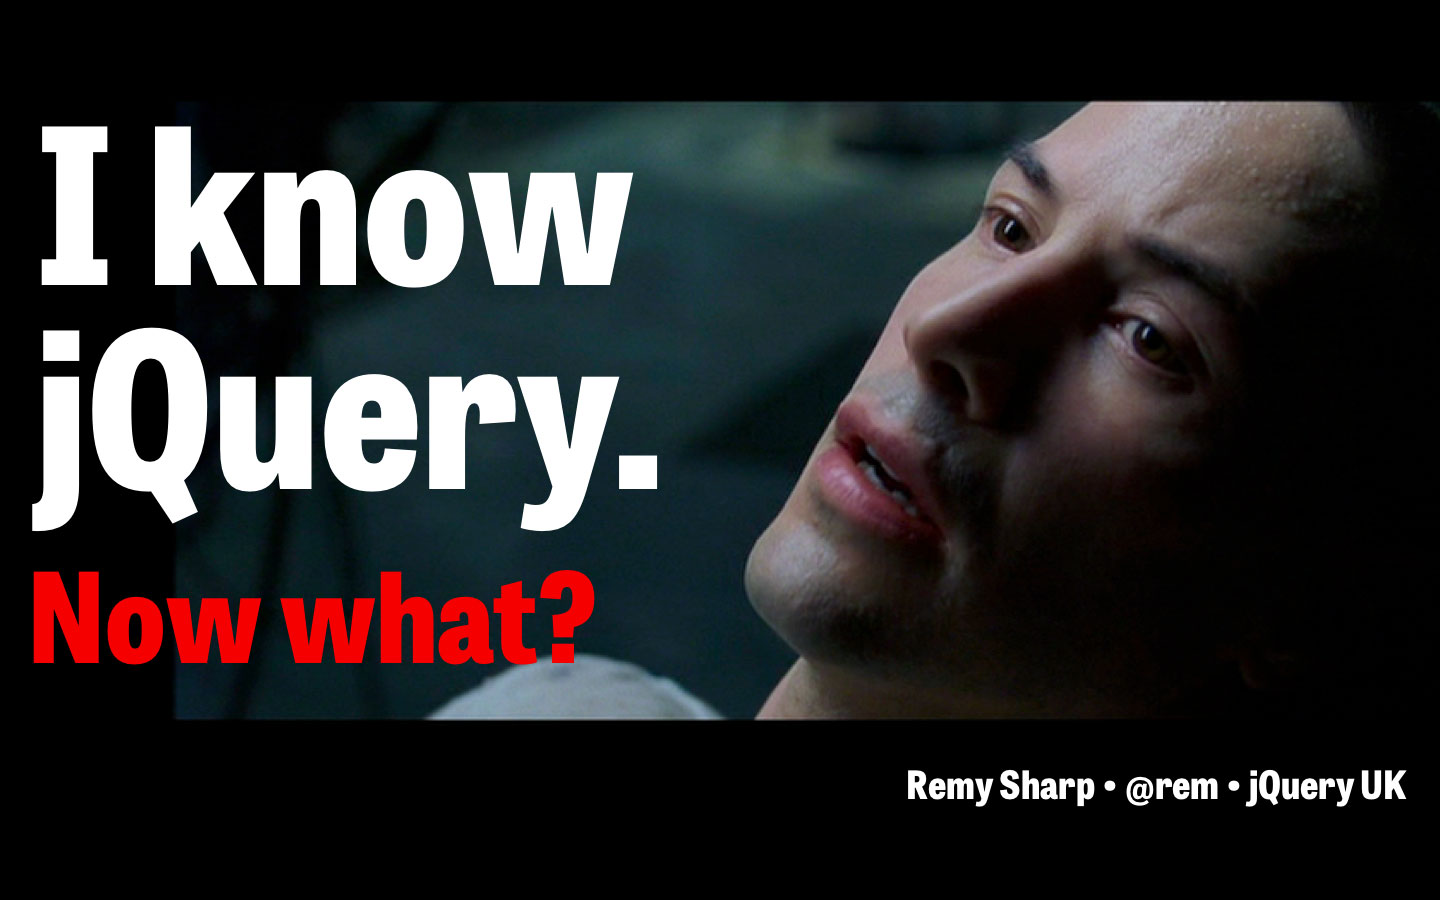 I know jQuery. Now what?